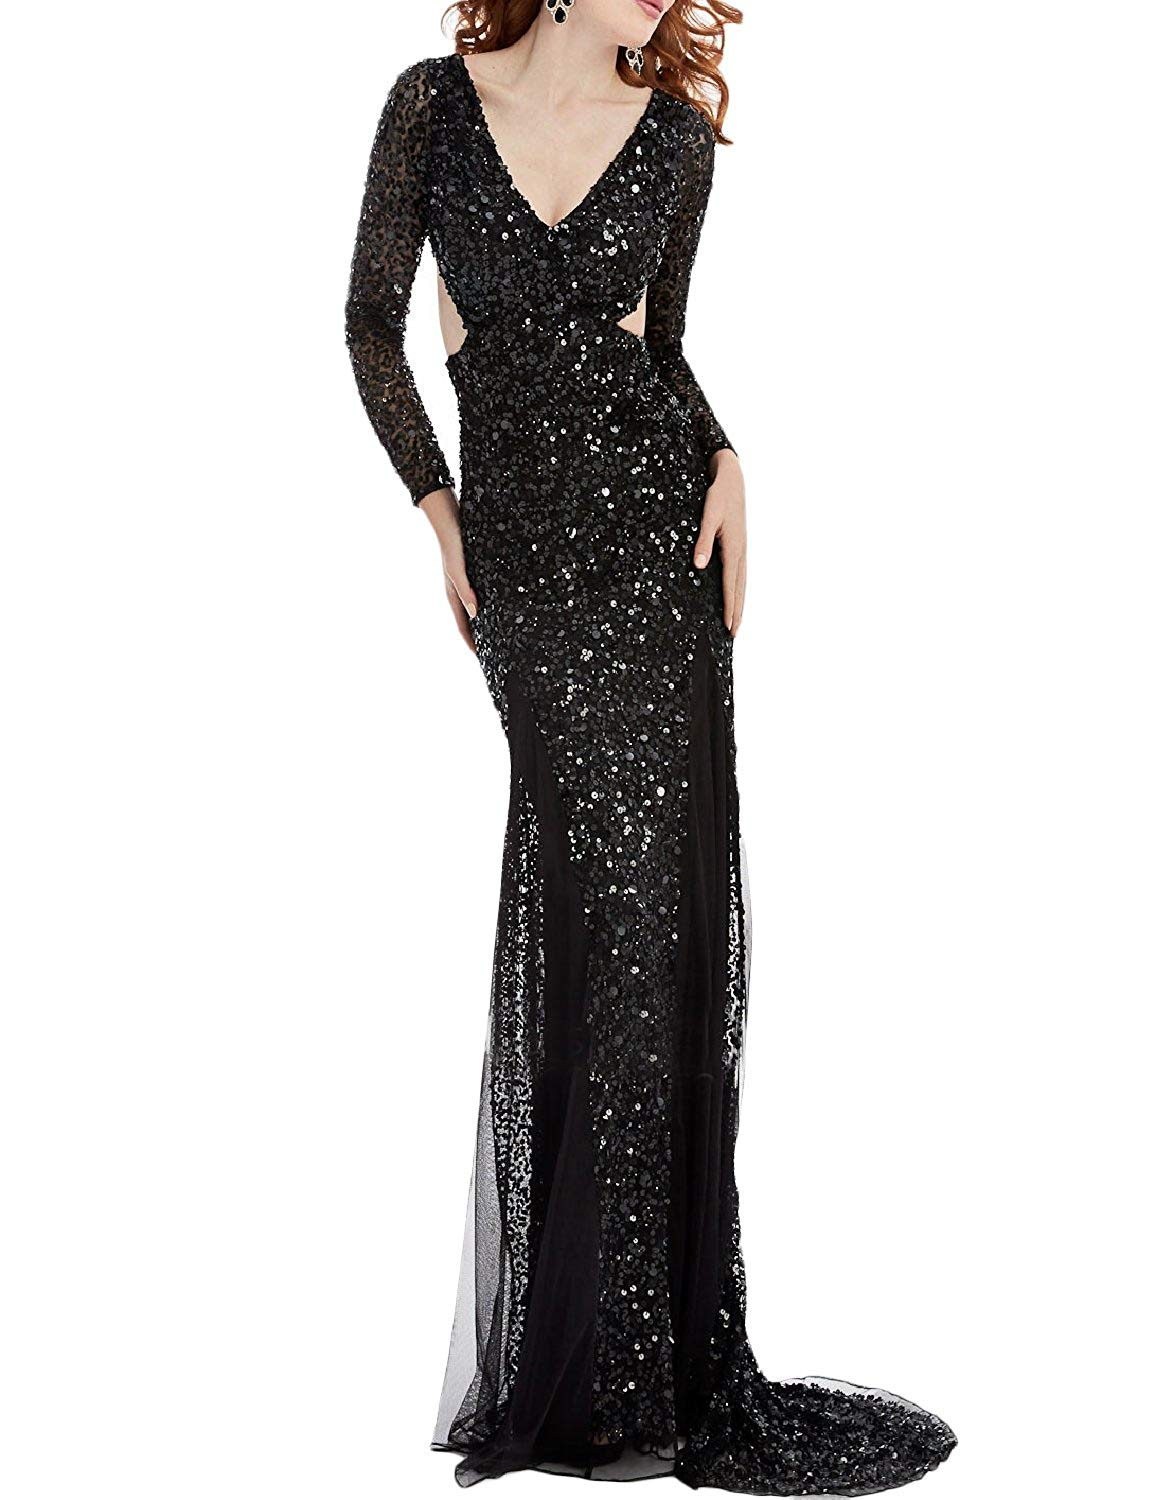 ff6d480dba1 Get Quotations · OYISHA Womens Plunging Sequined Evening Gown Backless  Celebrity Party Dress SQ35